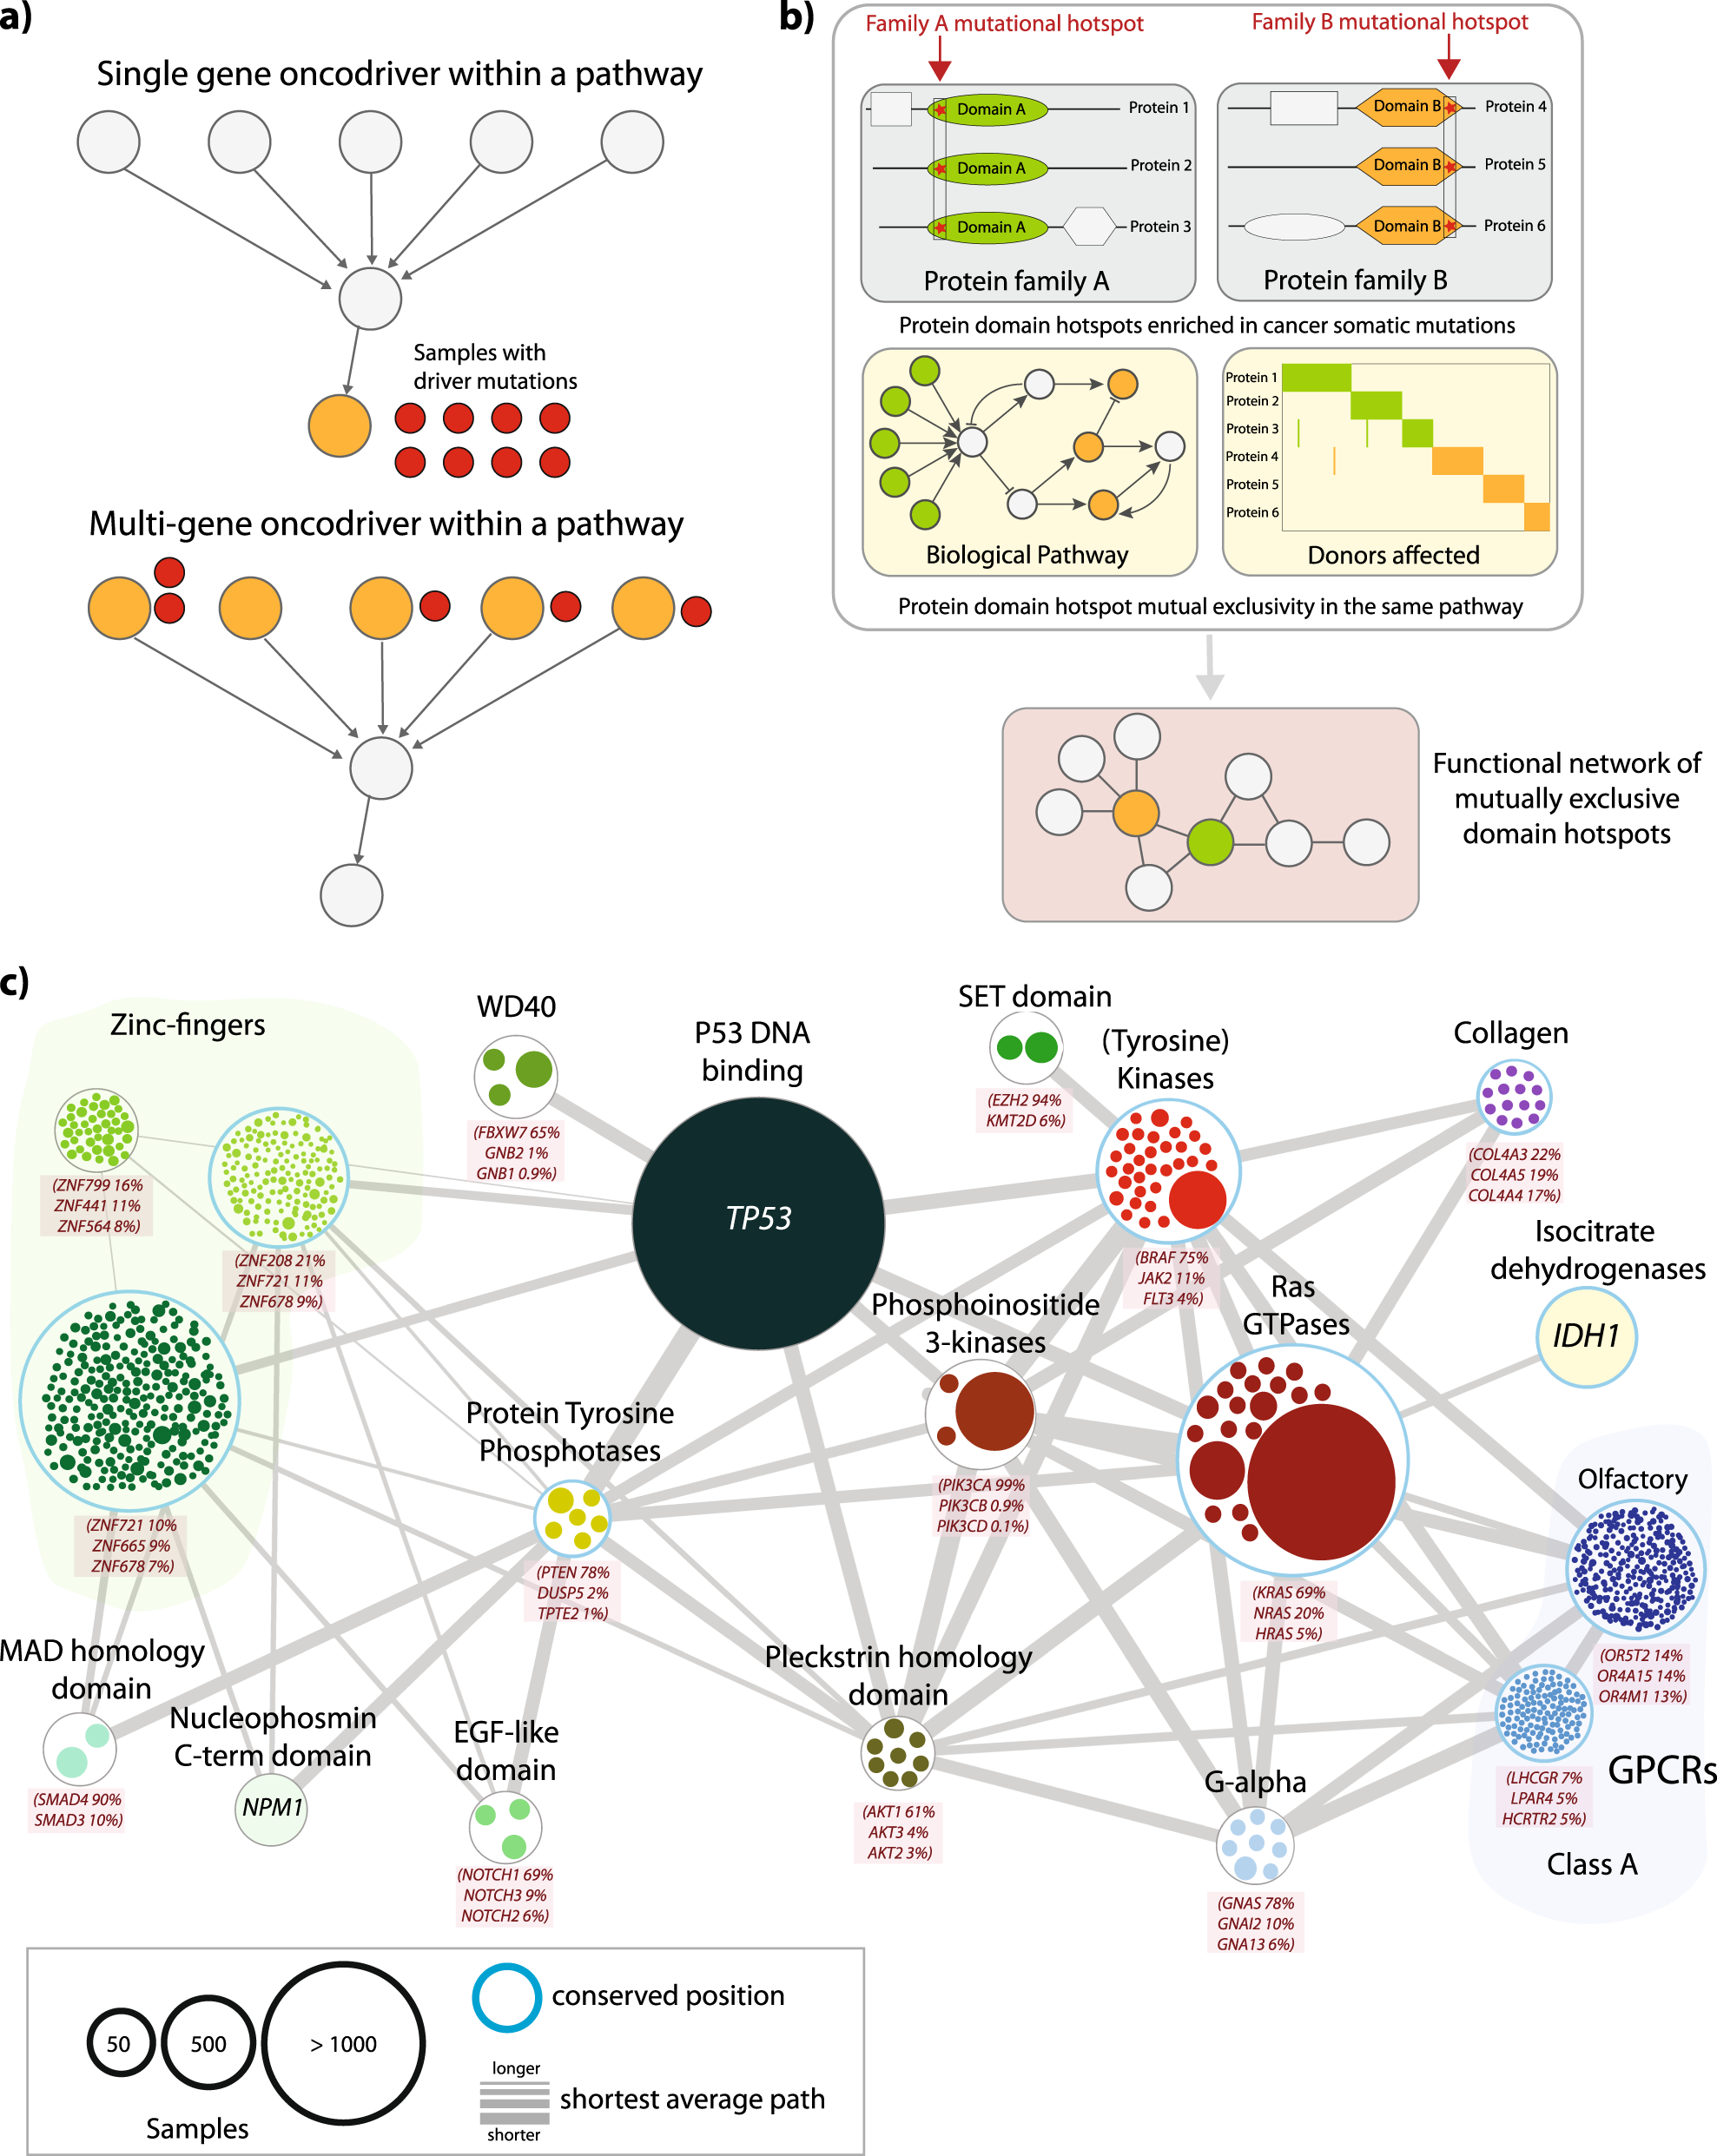 Rare, functional, somatic variants in gene families linked to cancer